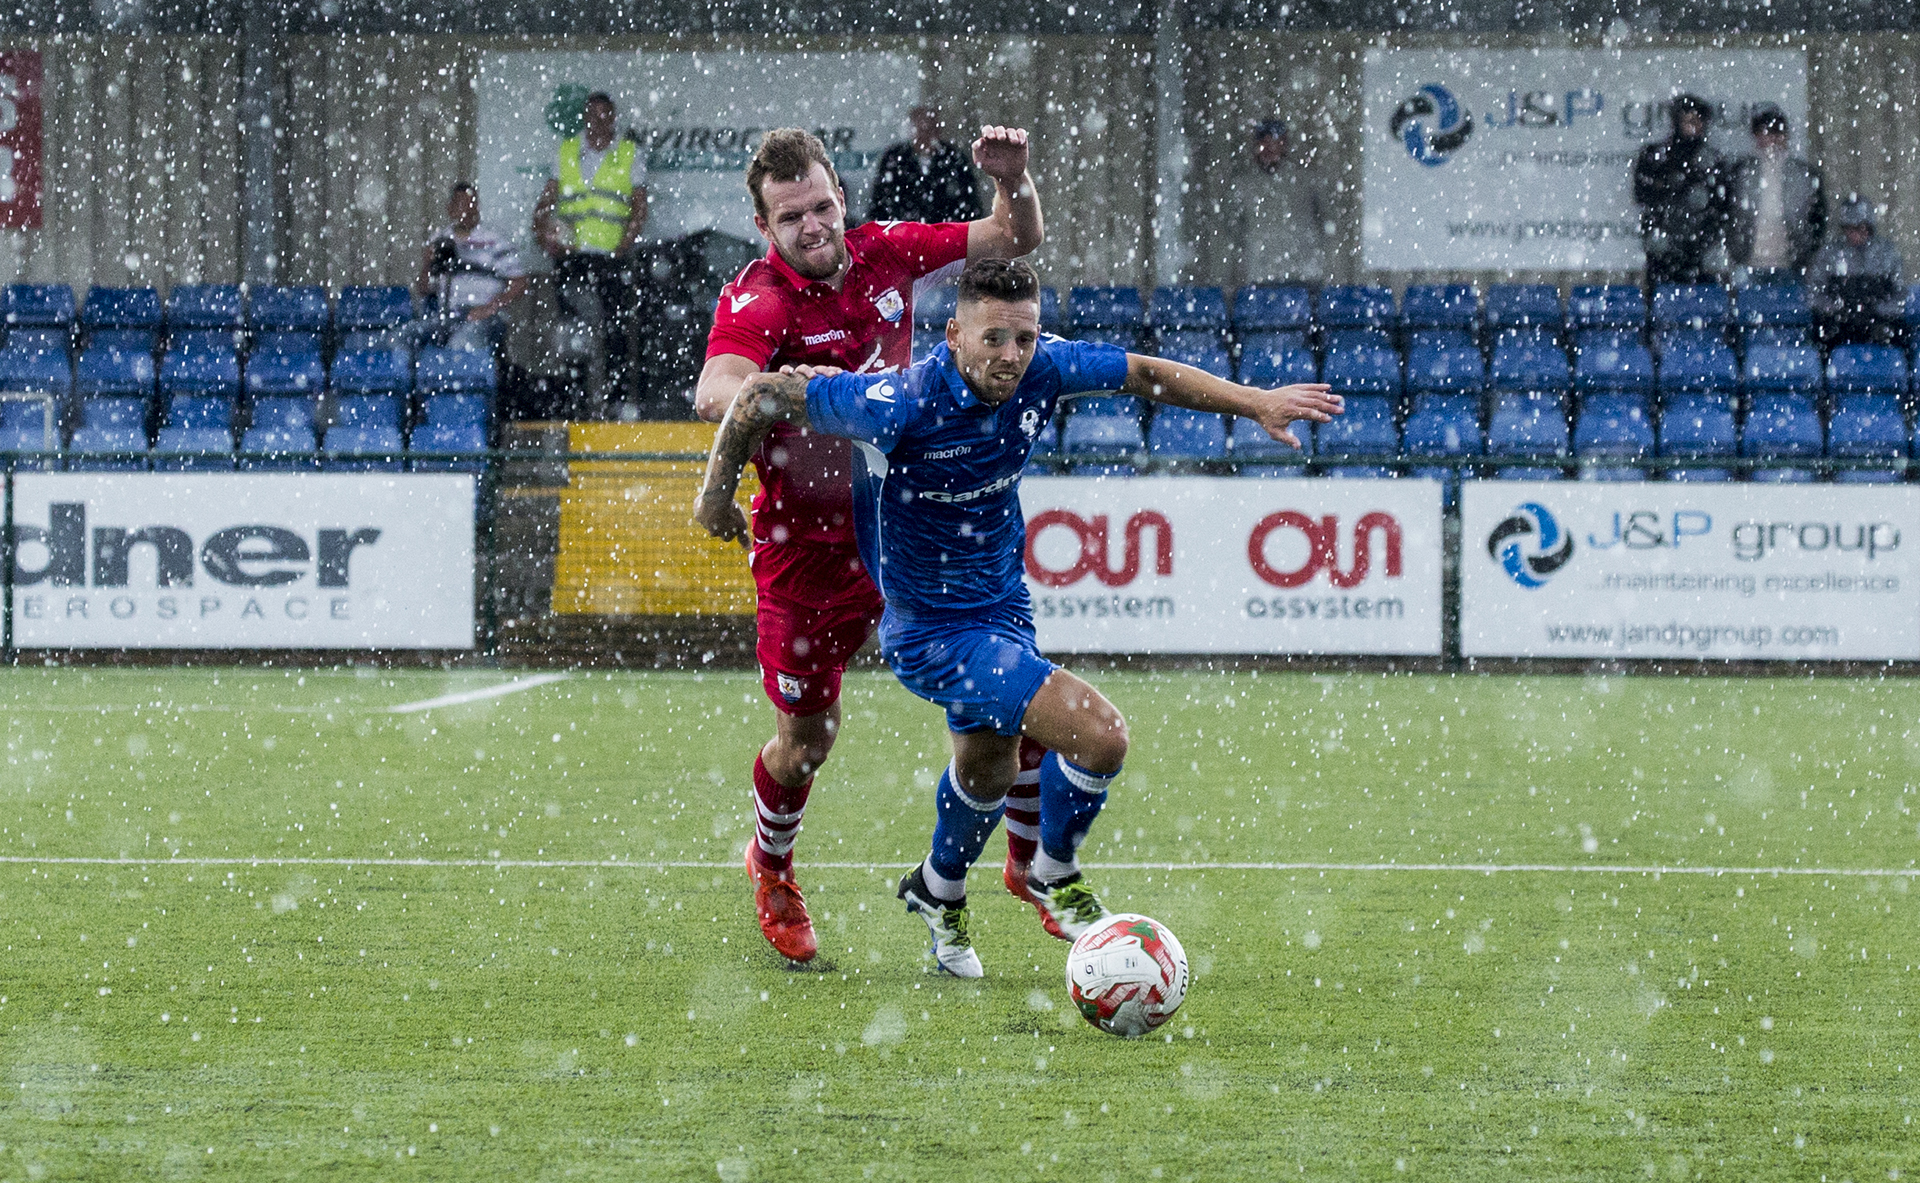 Ex-Nomads Wes Baynes and Callum Morris clash as they battle through the inclement weather - © NCM Media